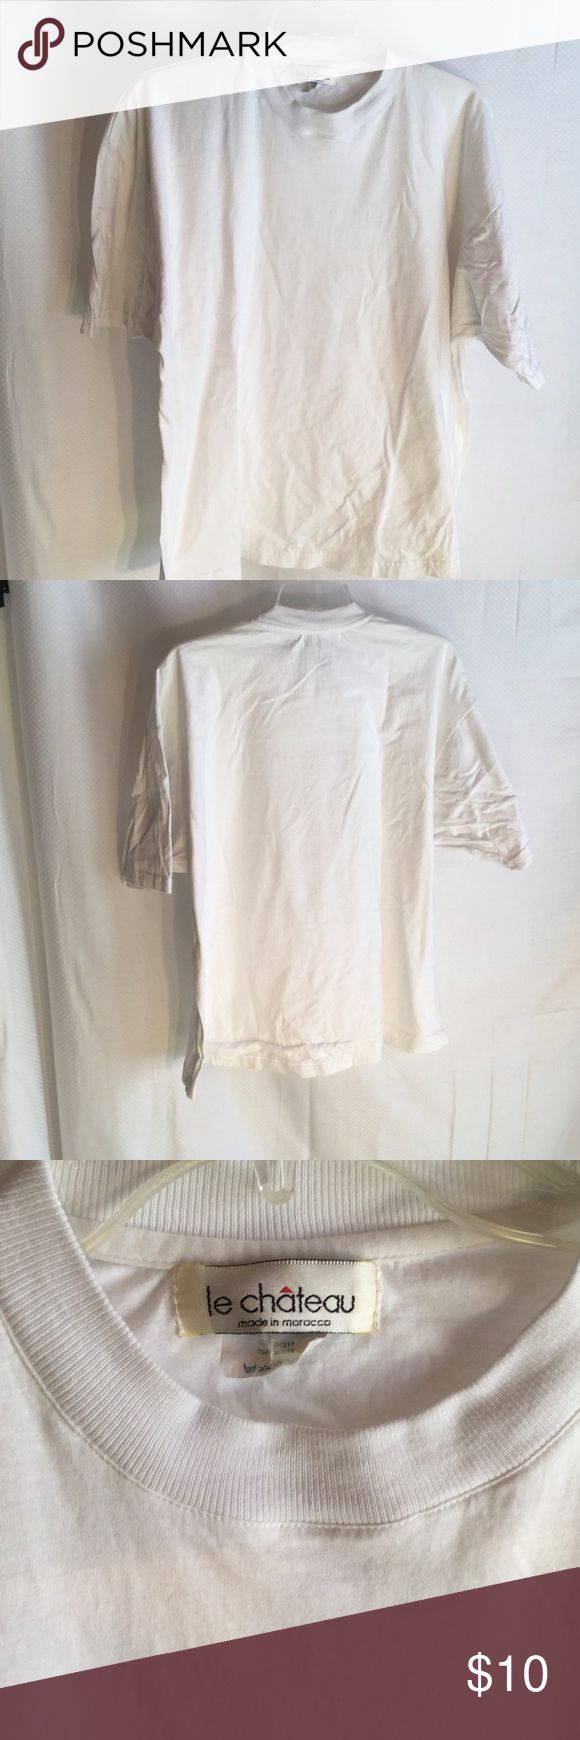 Ladies 100 cotton oversized white t shirt Ladies 100 cotton oversized white t shirt. Sized as one size but very generous in fit and could be used over leggings.perfect condition le chateau Tops Tees - Short Sleeve